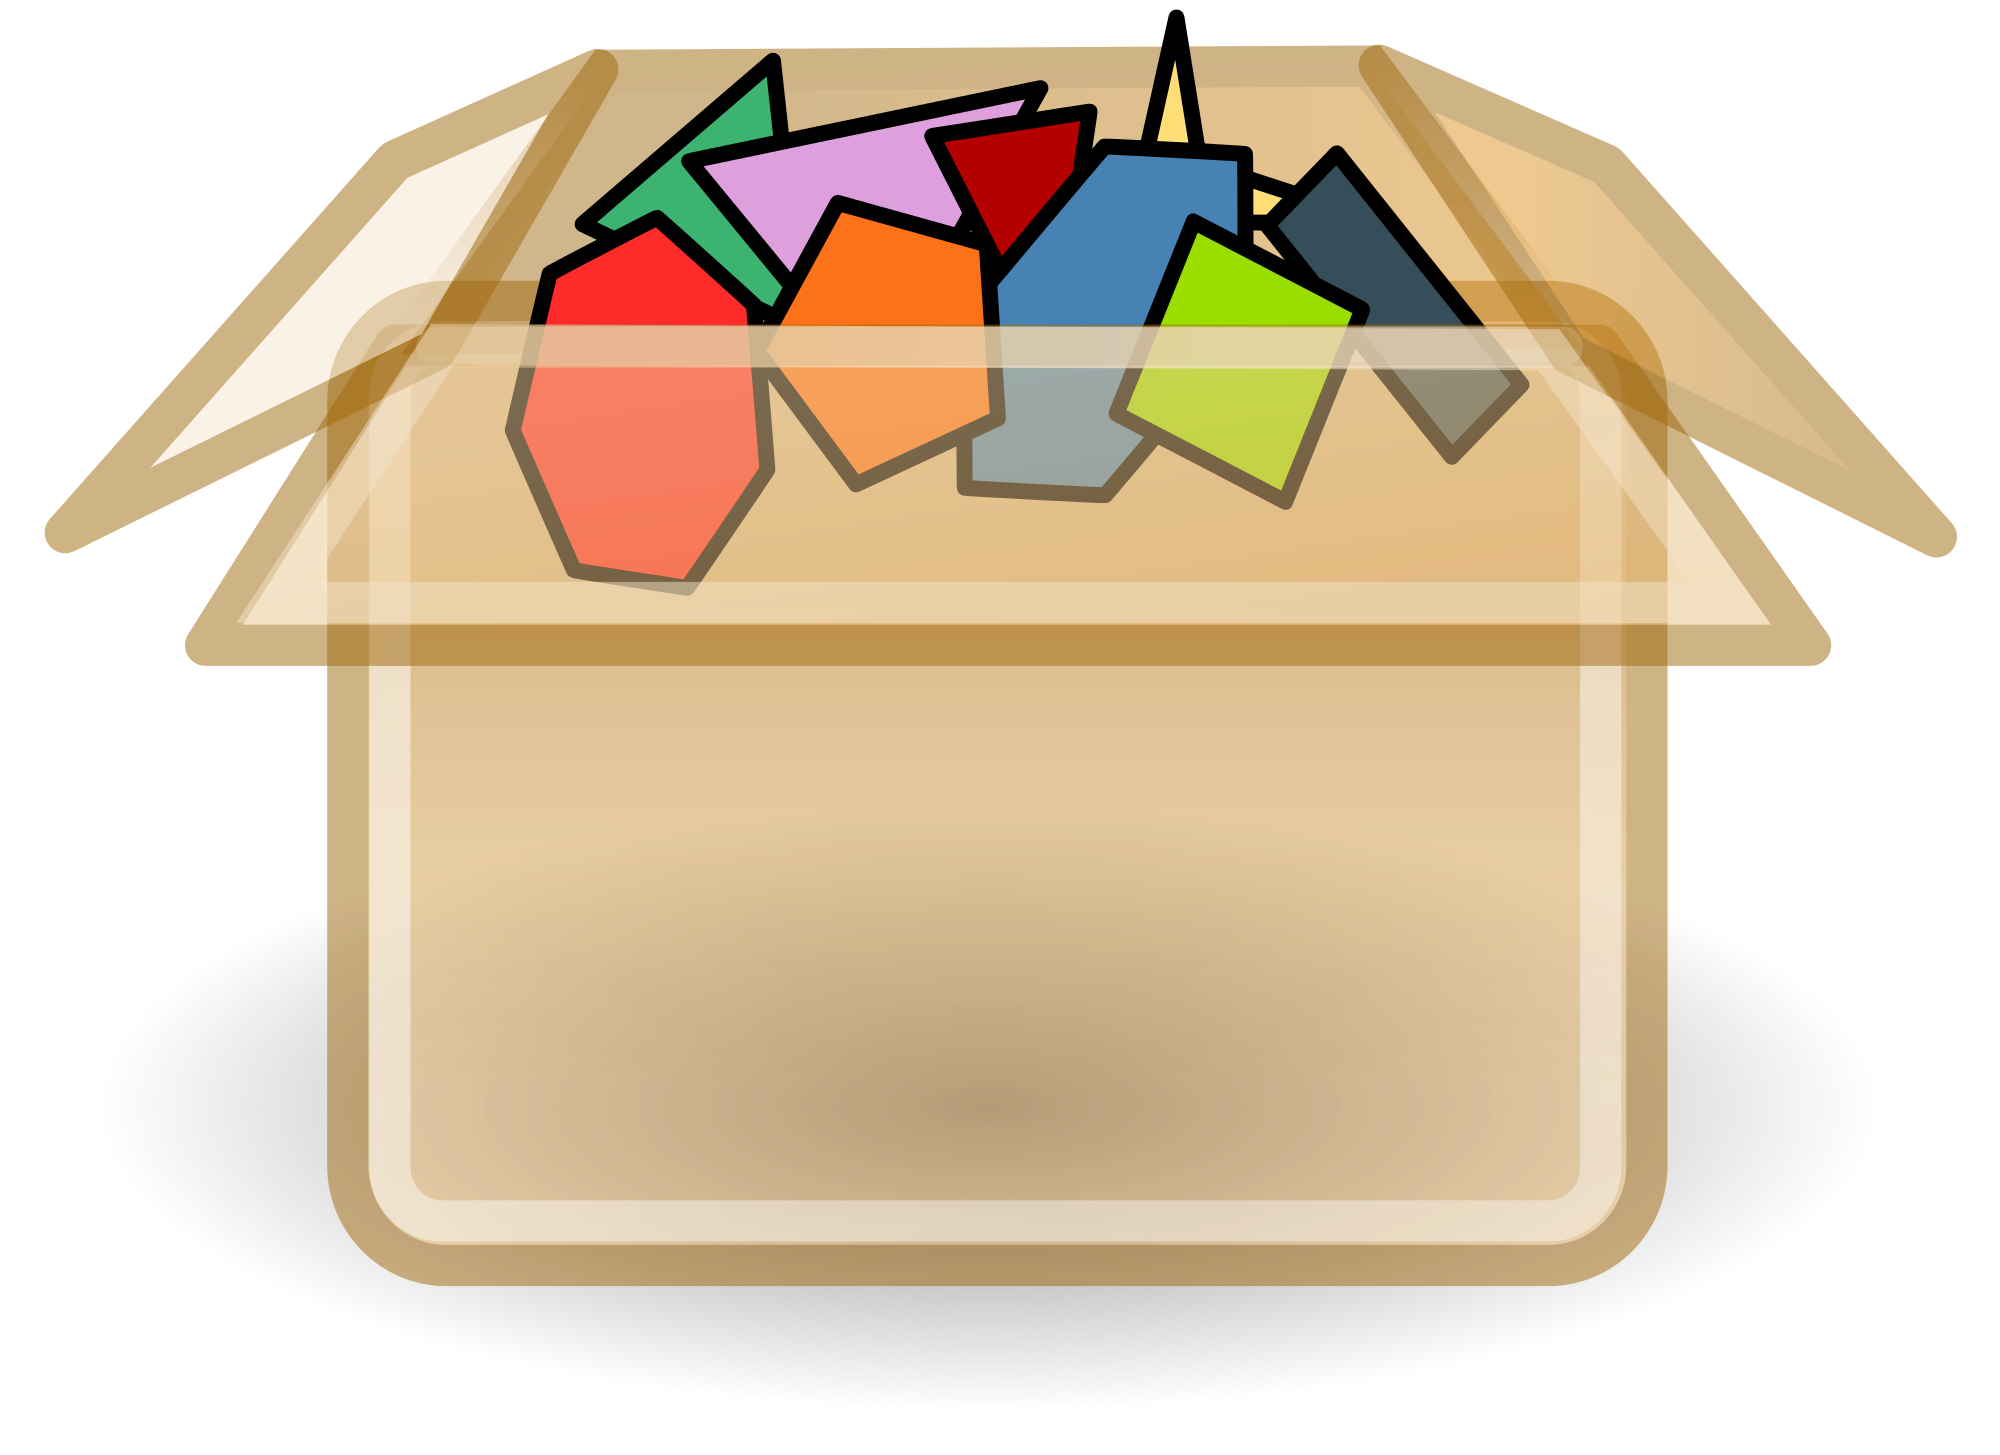 Fur vector polygon. File transparent box with